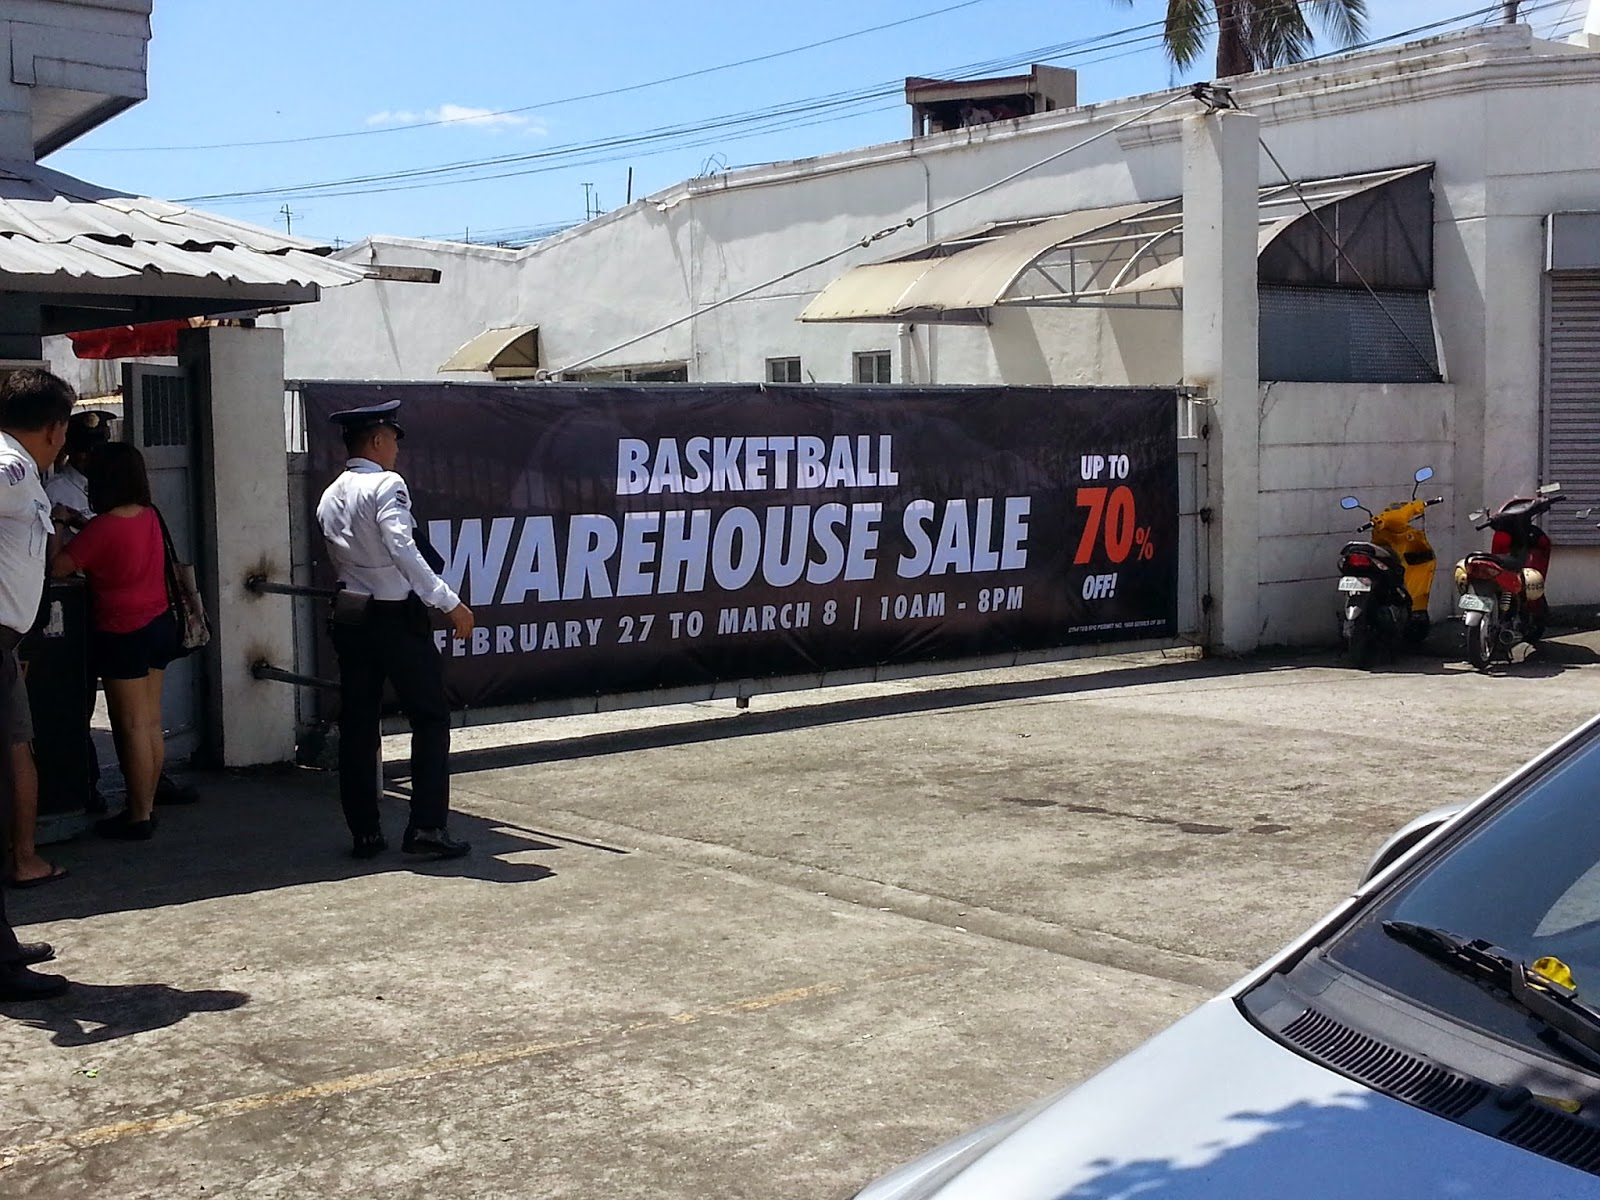 Nike Basketball Warehouse SALE at Agility Center (Feb.27 to March 8, 2015)